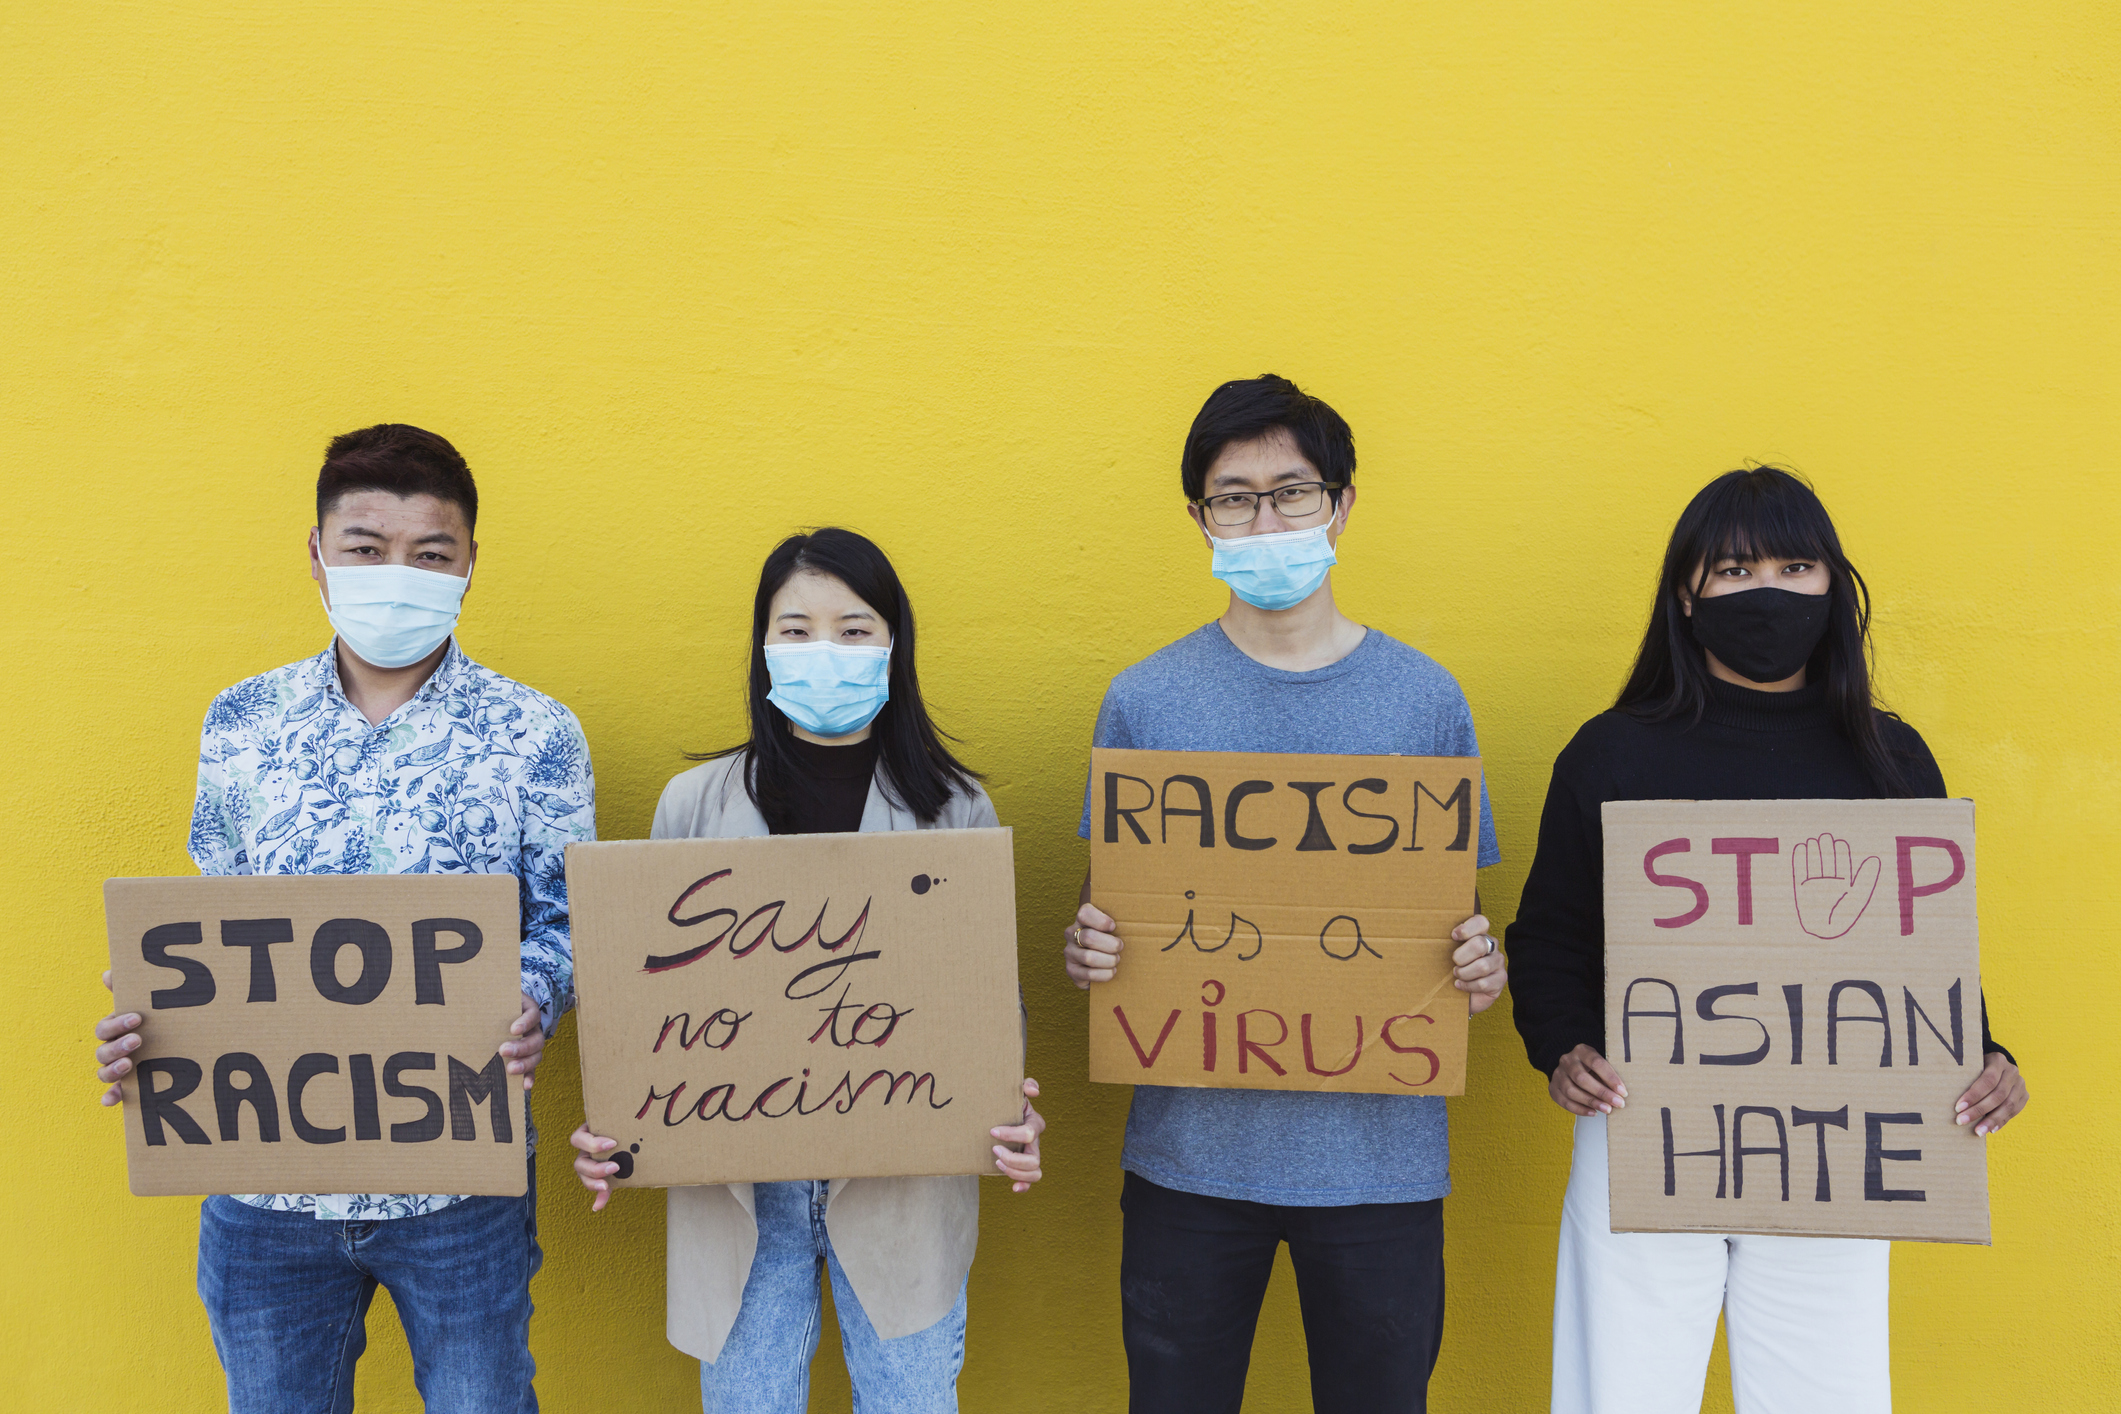 Group of Asian people protest on the street for equal rights